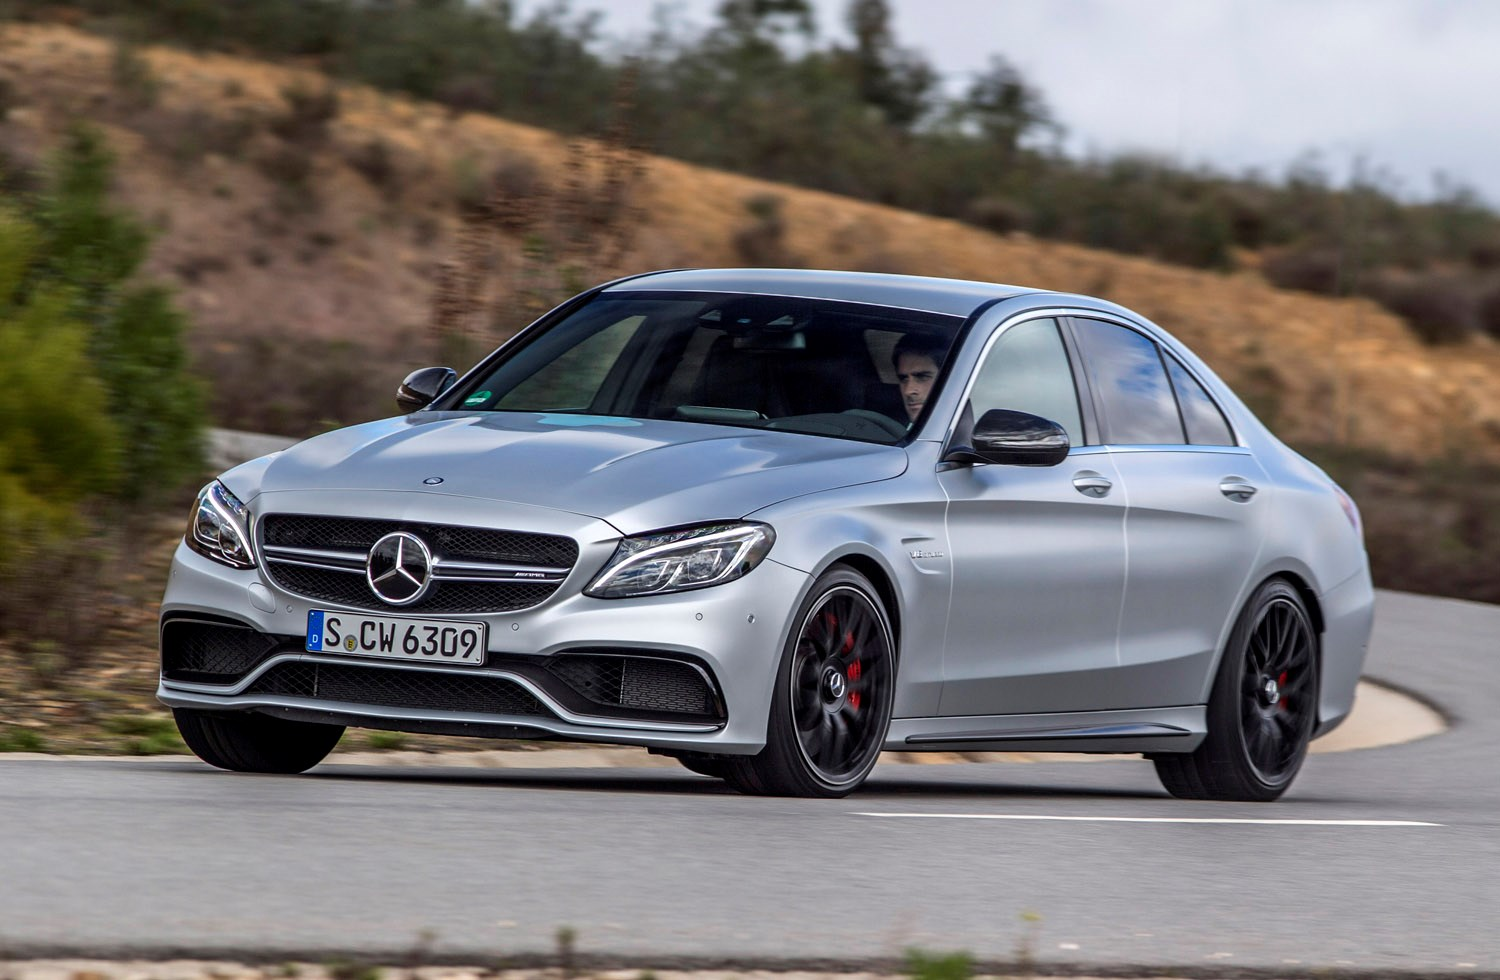 mercedes benz c class amg review 2015 parkers. Black Bedroom Furniture Sets. Home Design Ideas